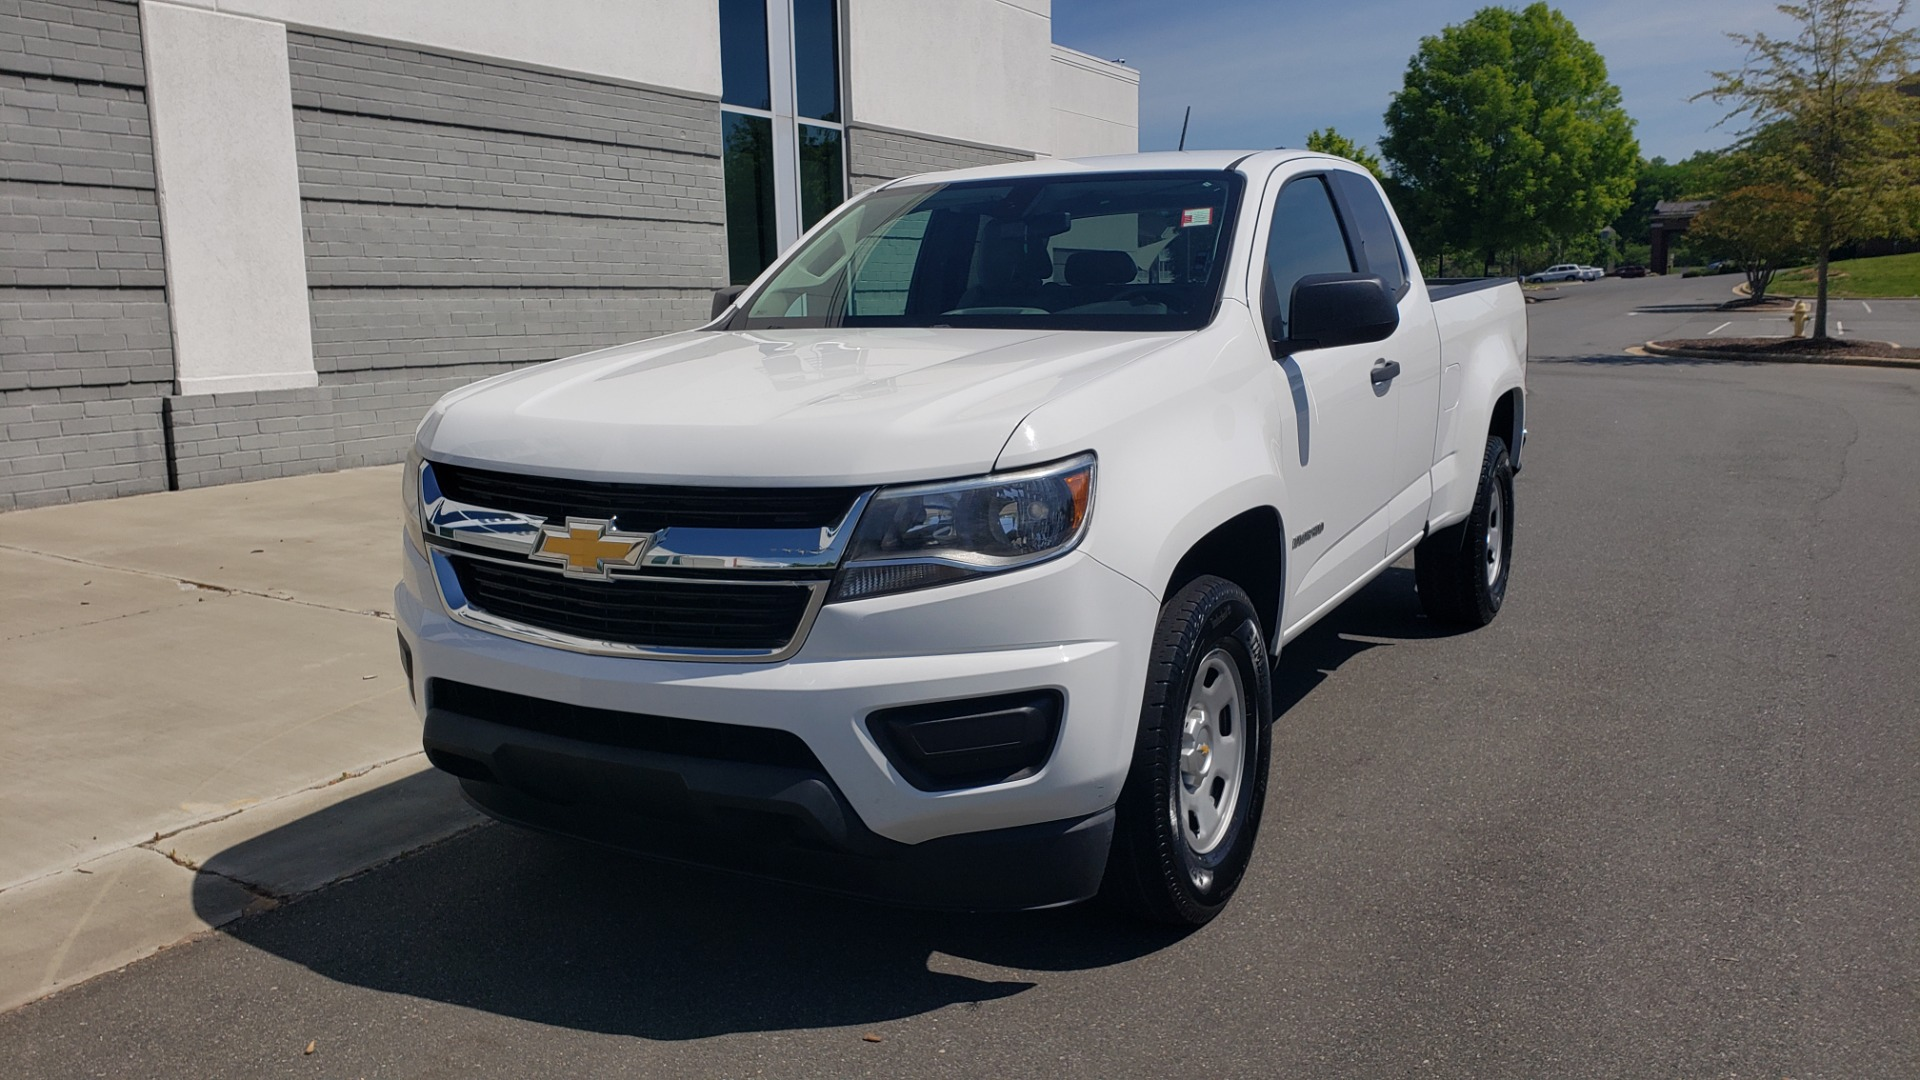 Used 2016 Chevrolet COLORADO 2WD WT / EXT CAB / 128.3 WB / 4-CYL / 6-SPD AUTO / REARVIEW for sale Sold at Formula Imports in Charlotte NC 28227 2